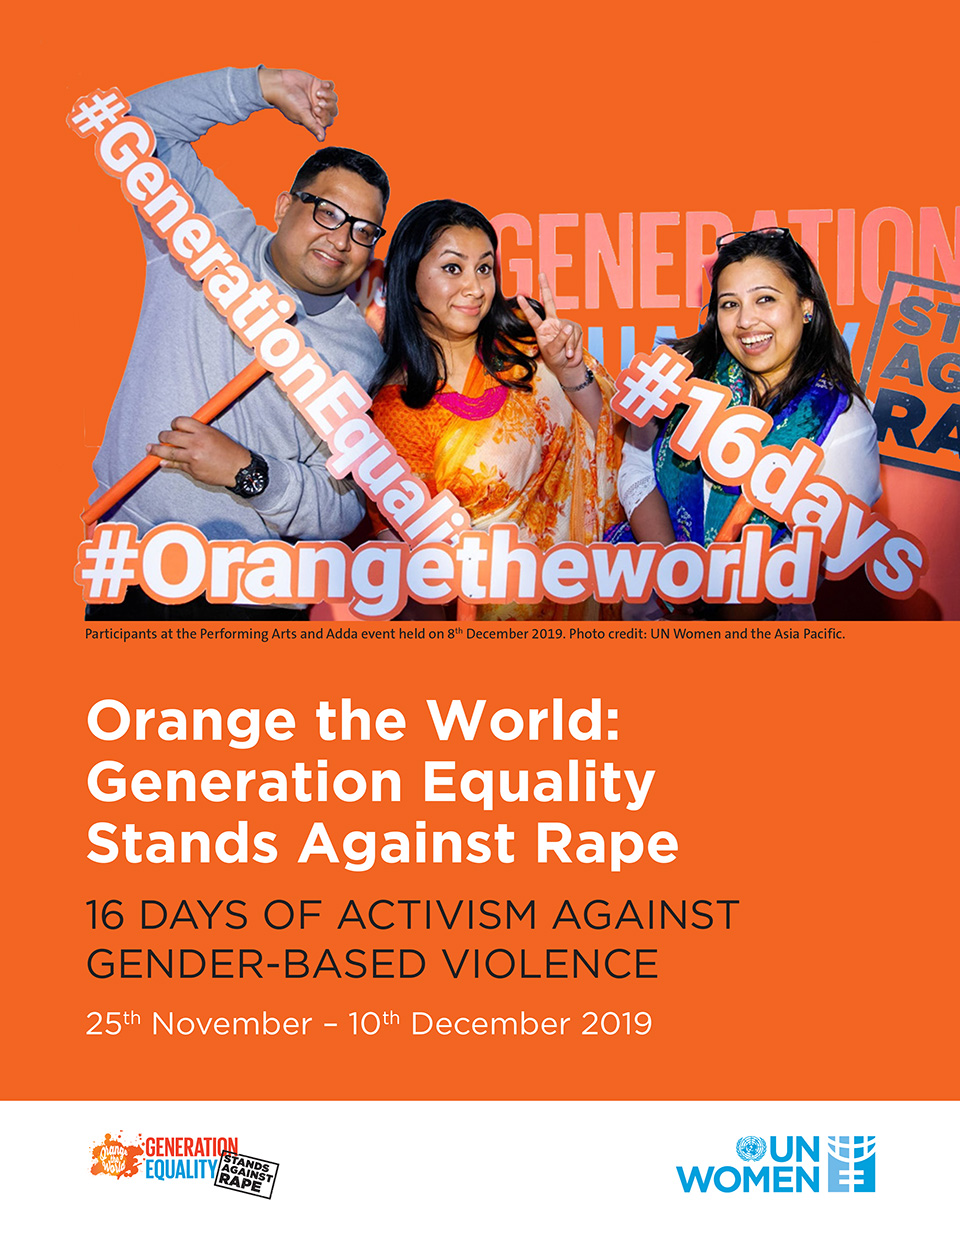 UN Women Bangladesh Newsletter | 16 DAYS OF ACTIVISM AGAINST GENDER-BASED VIOLENCE